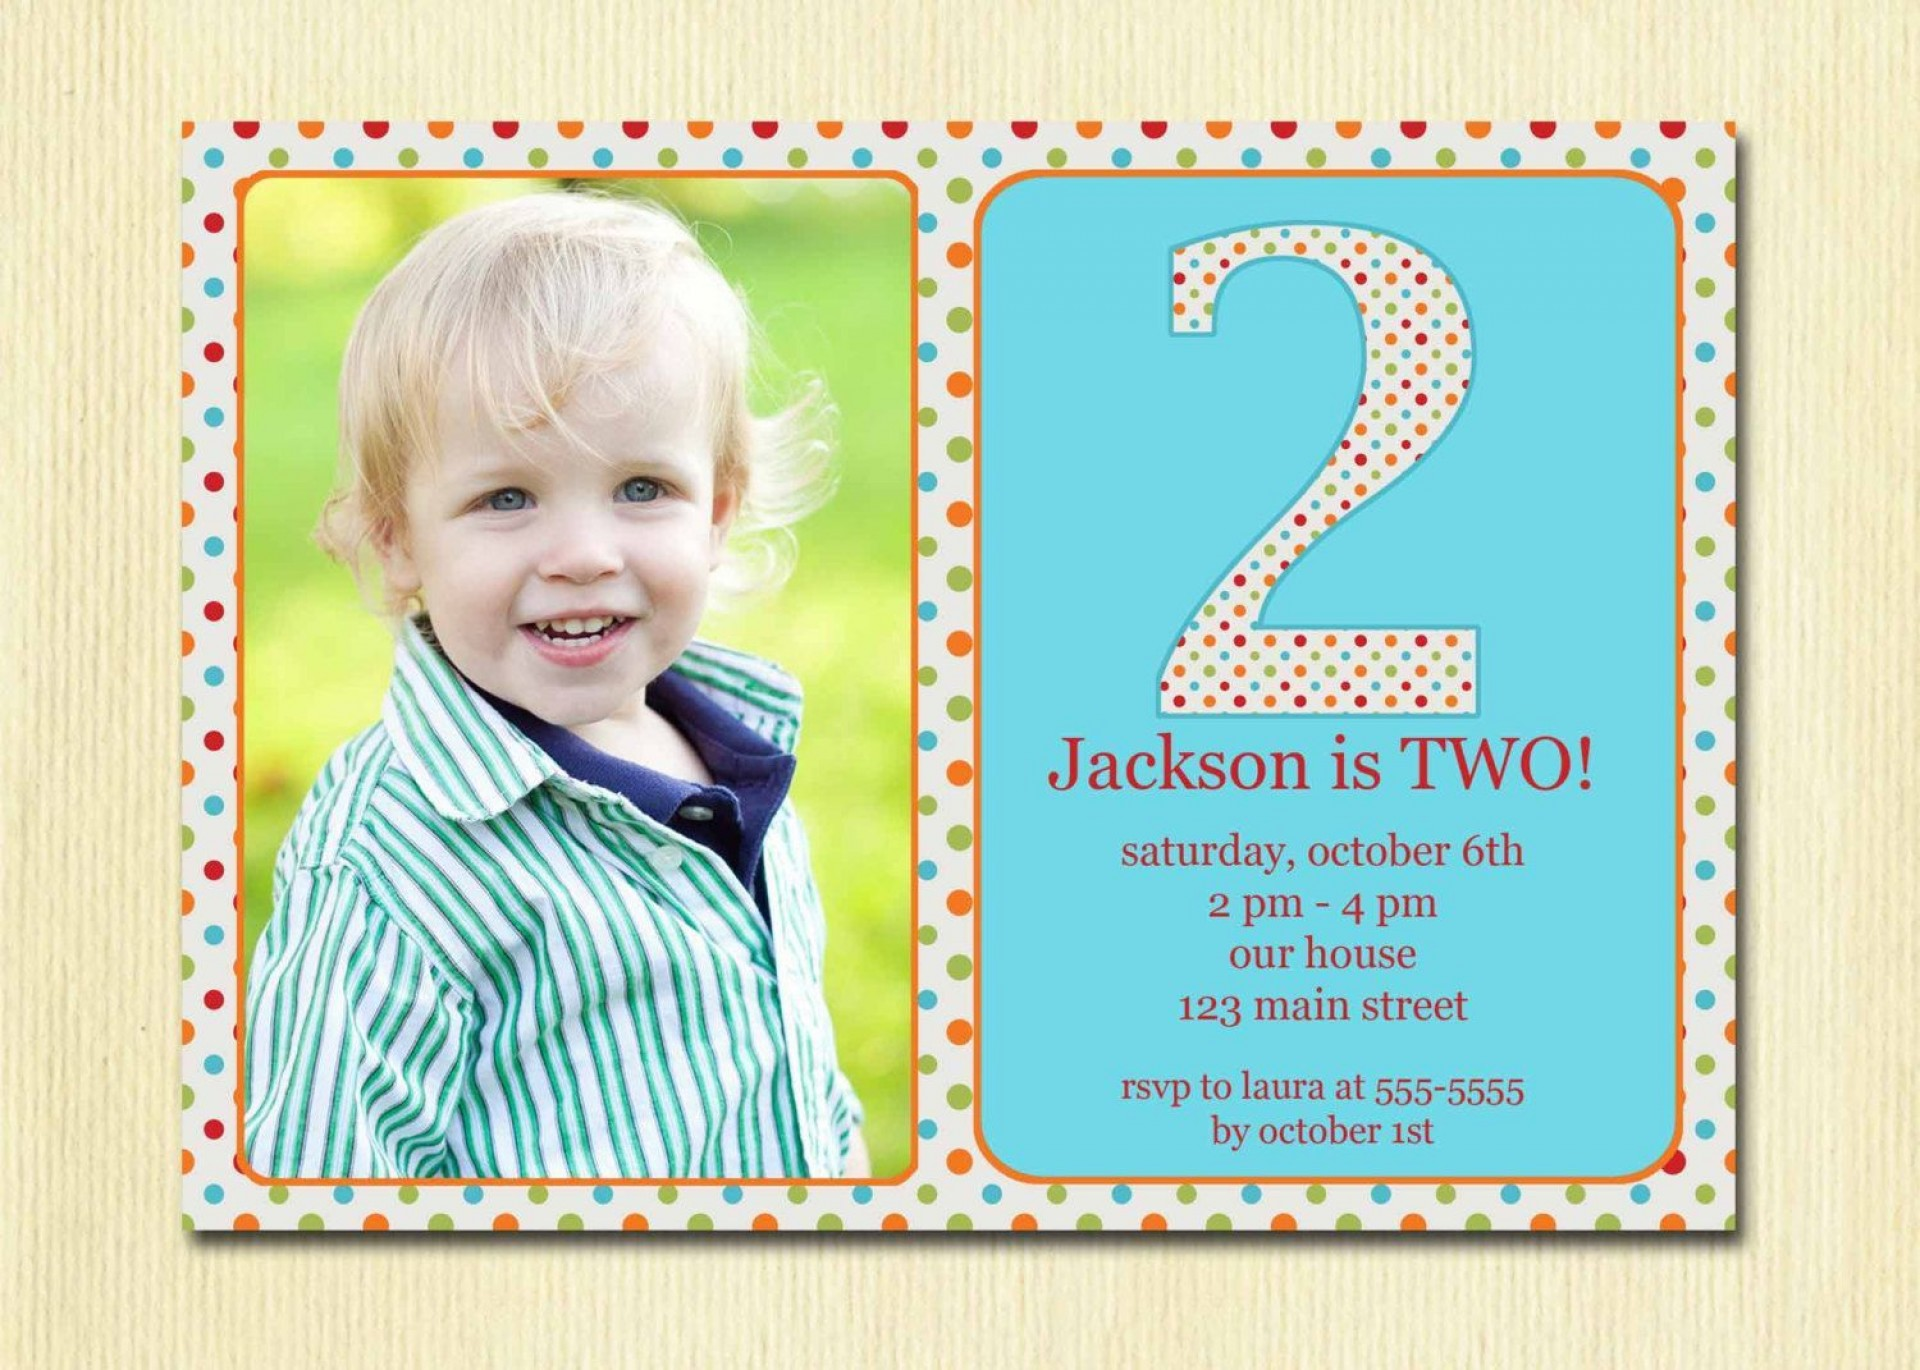 005 Striking Birthday Invitation Wording Sample 5 Year Old Concept 1920